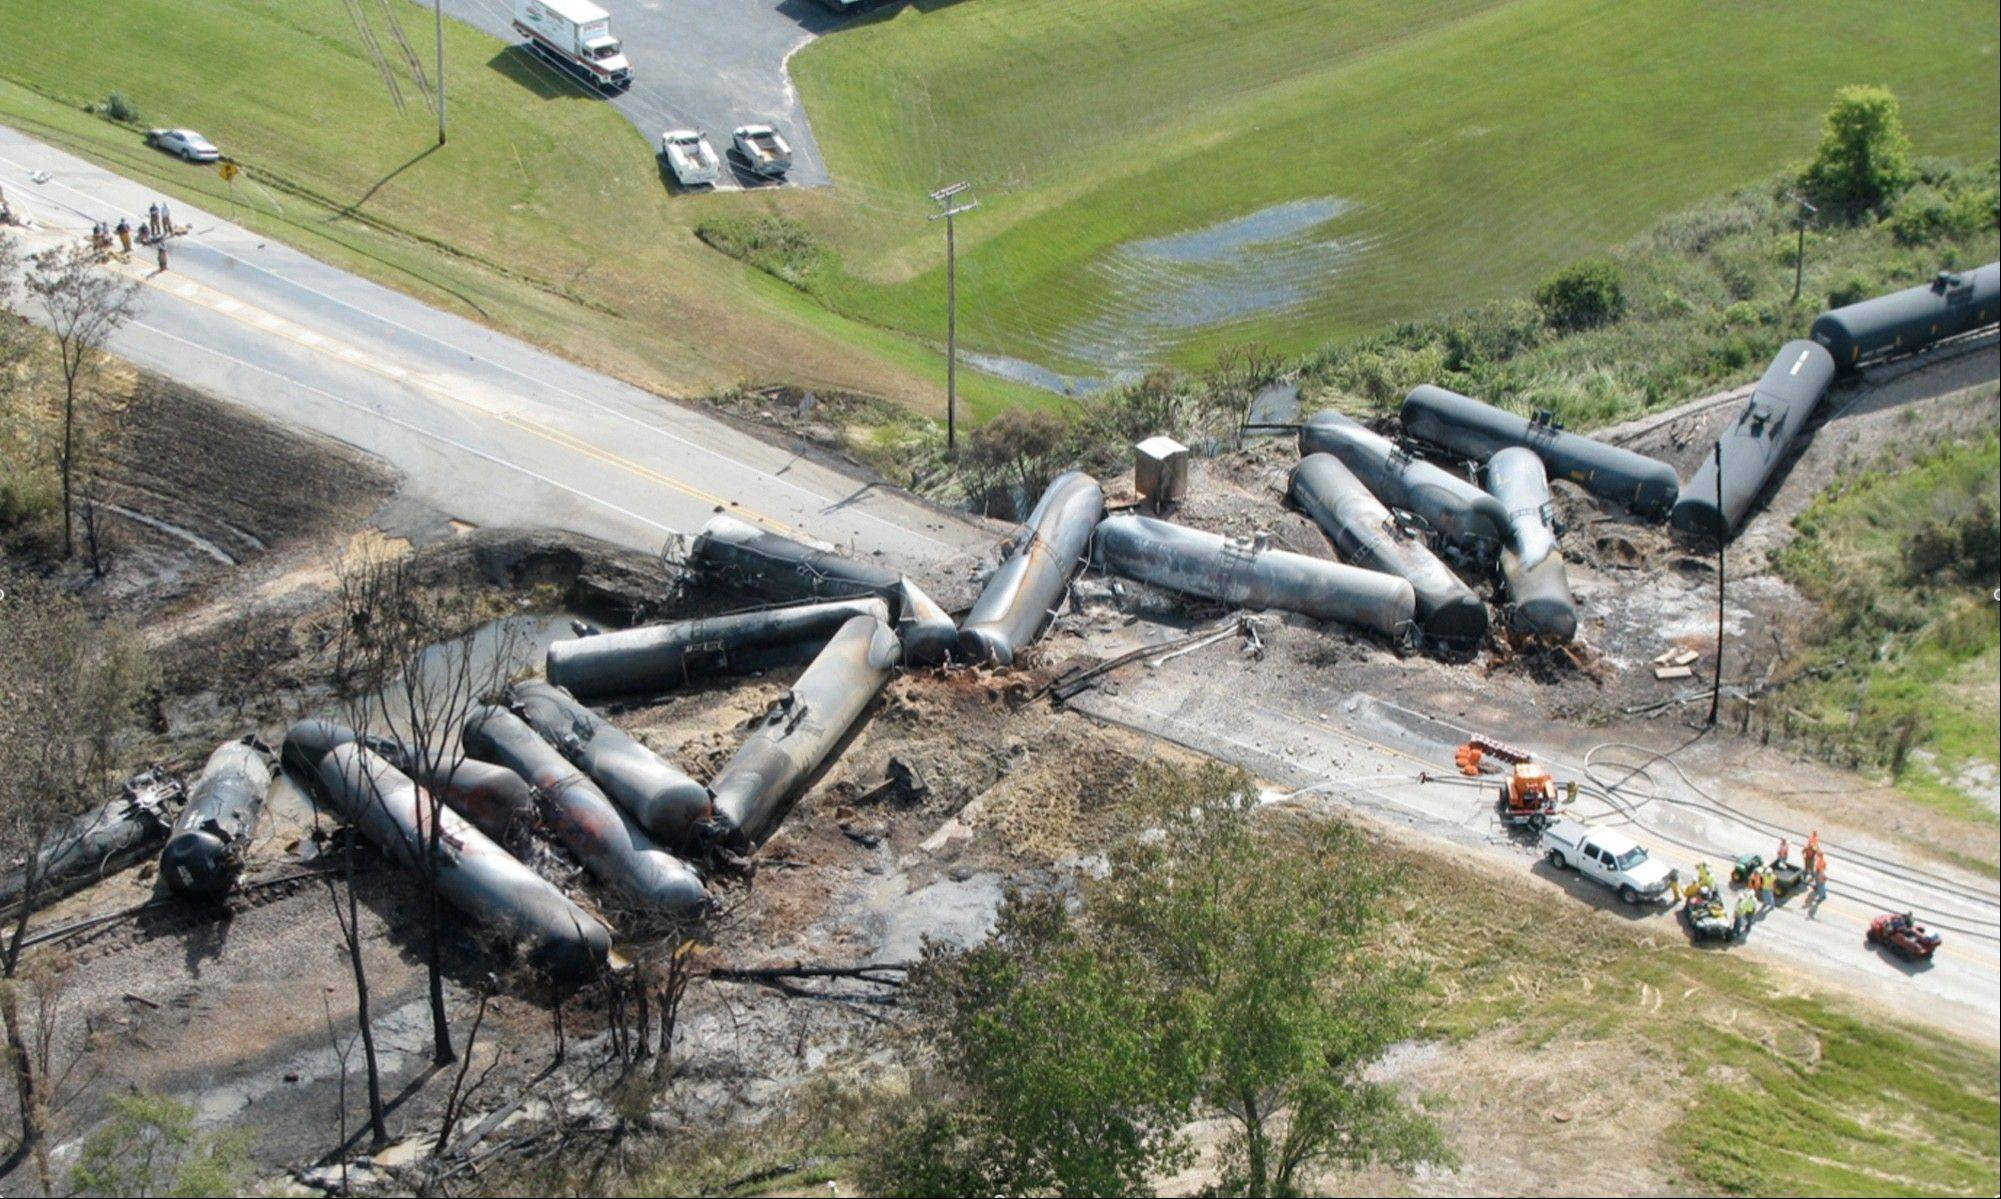 This June 20, 2009, aerial photo provided by the National Transportation Safety Board shows the aftermath of a Canadian National Railway freight train derailment in Cherry Valley, Ill. Rail cars loaded with thousands of gallons of highly flammable ethanol exploded in flames the day before from the derailment.